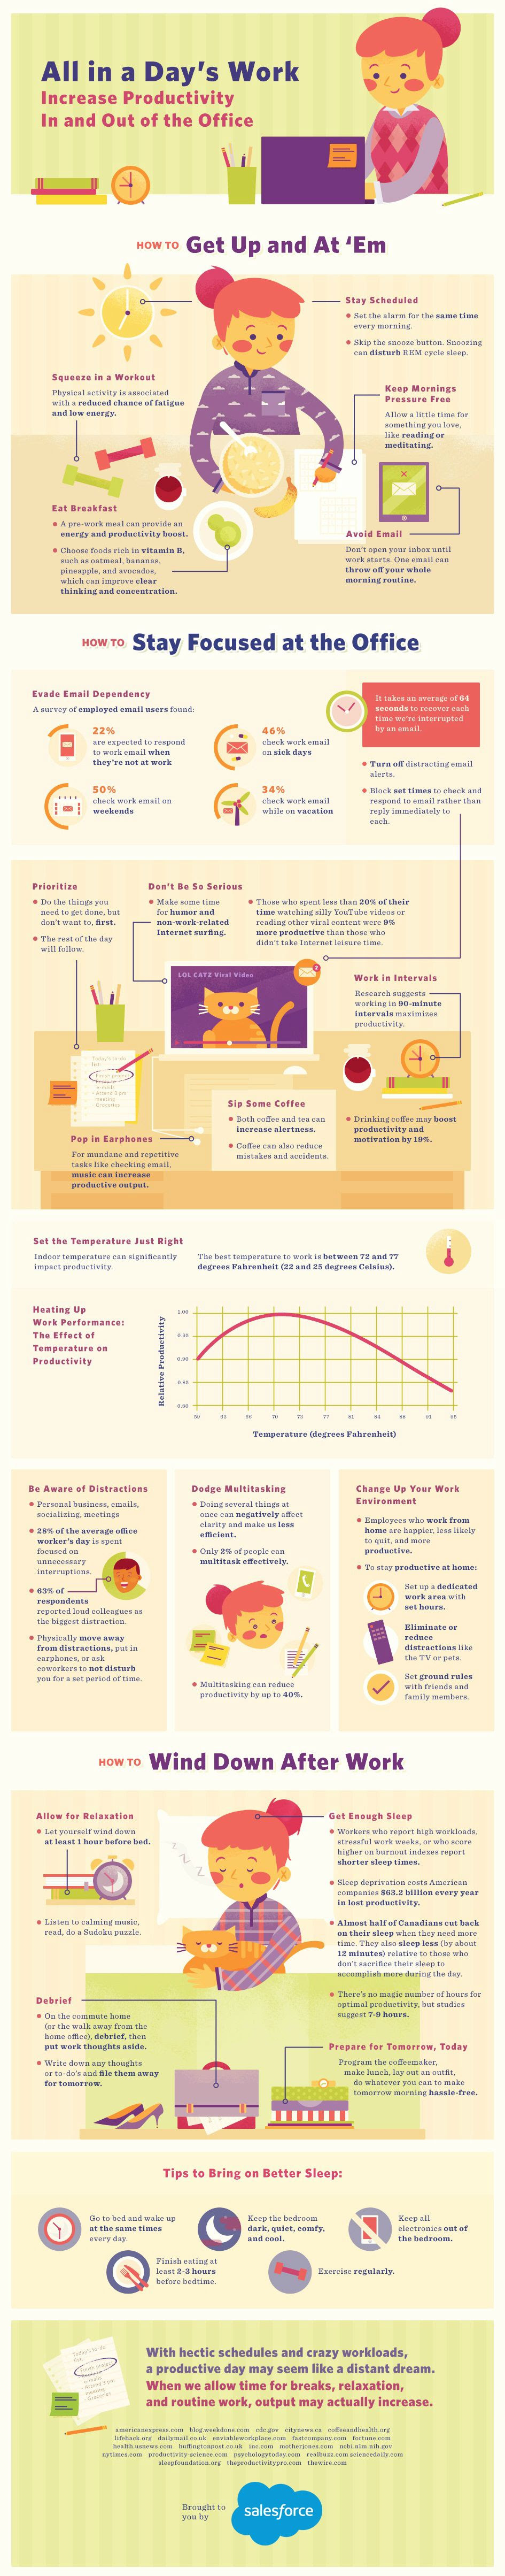 Entrepreneurs Amp Up Productivity, Don't Spend a Thing - #infographic